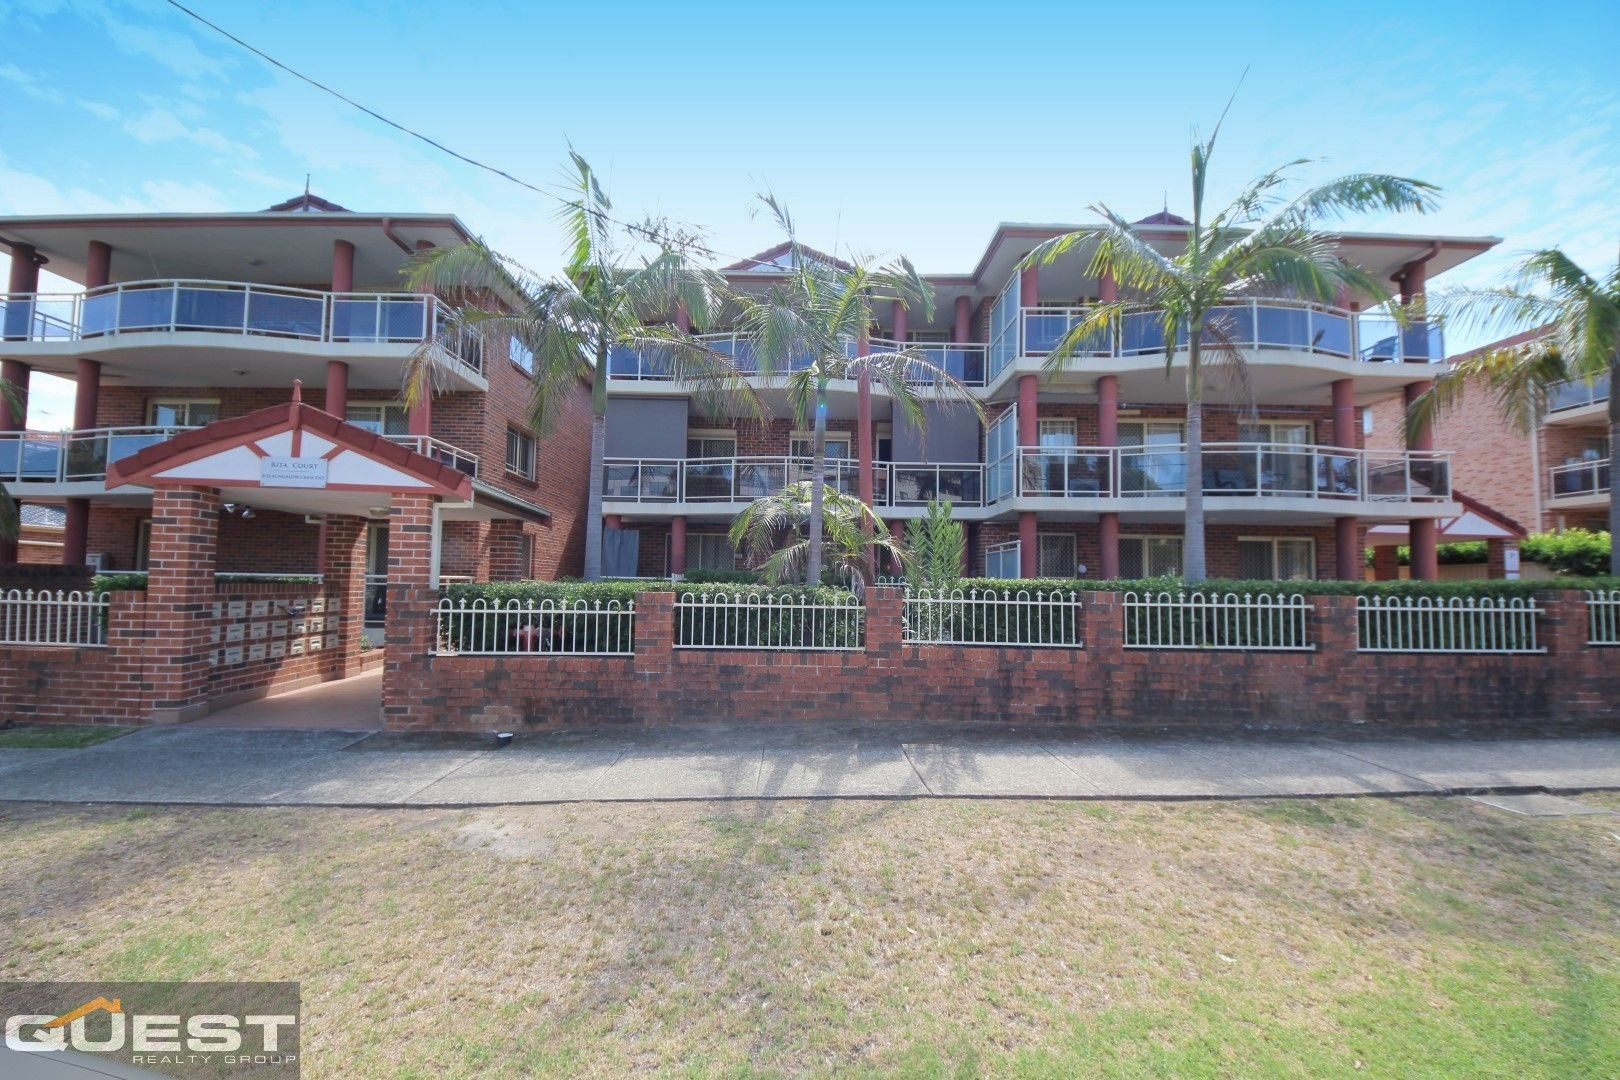 9/8-12 Bungalow Crescent, Bankstown NSW 2200, Image 0